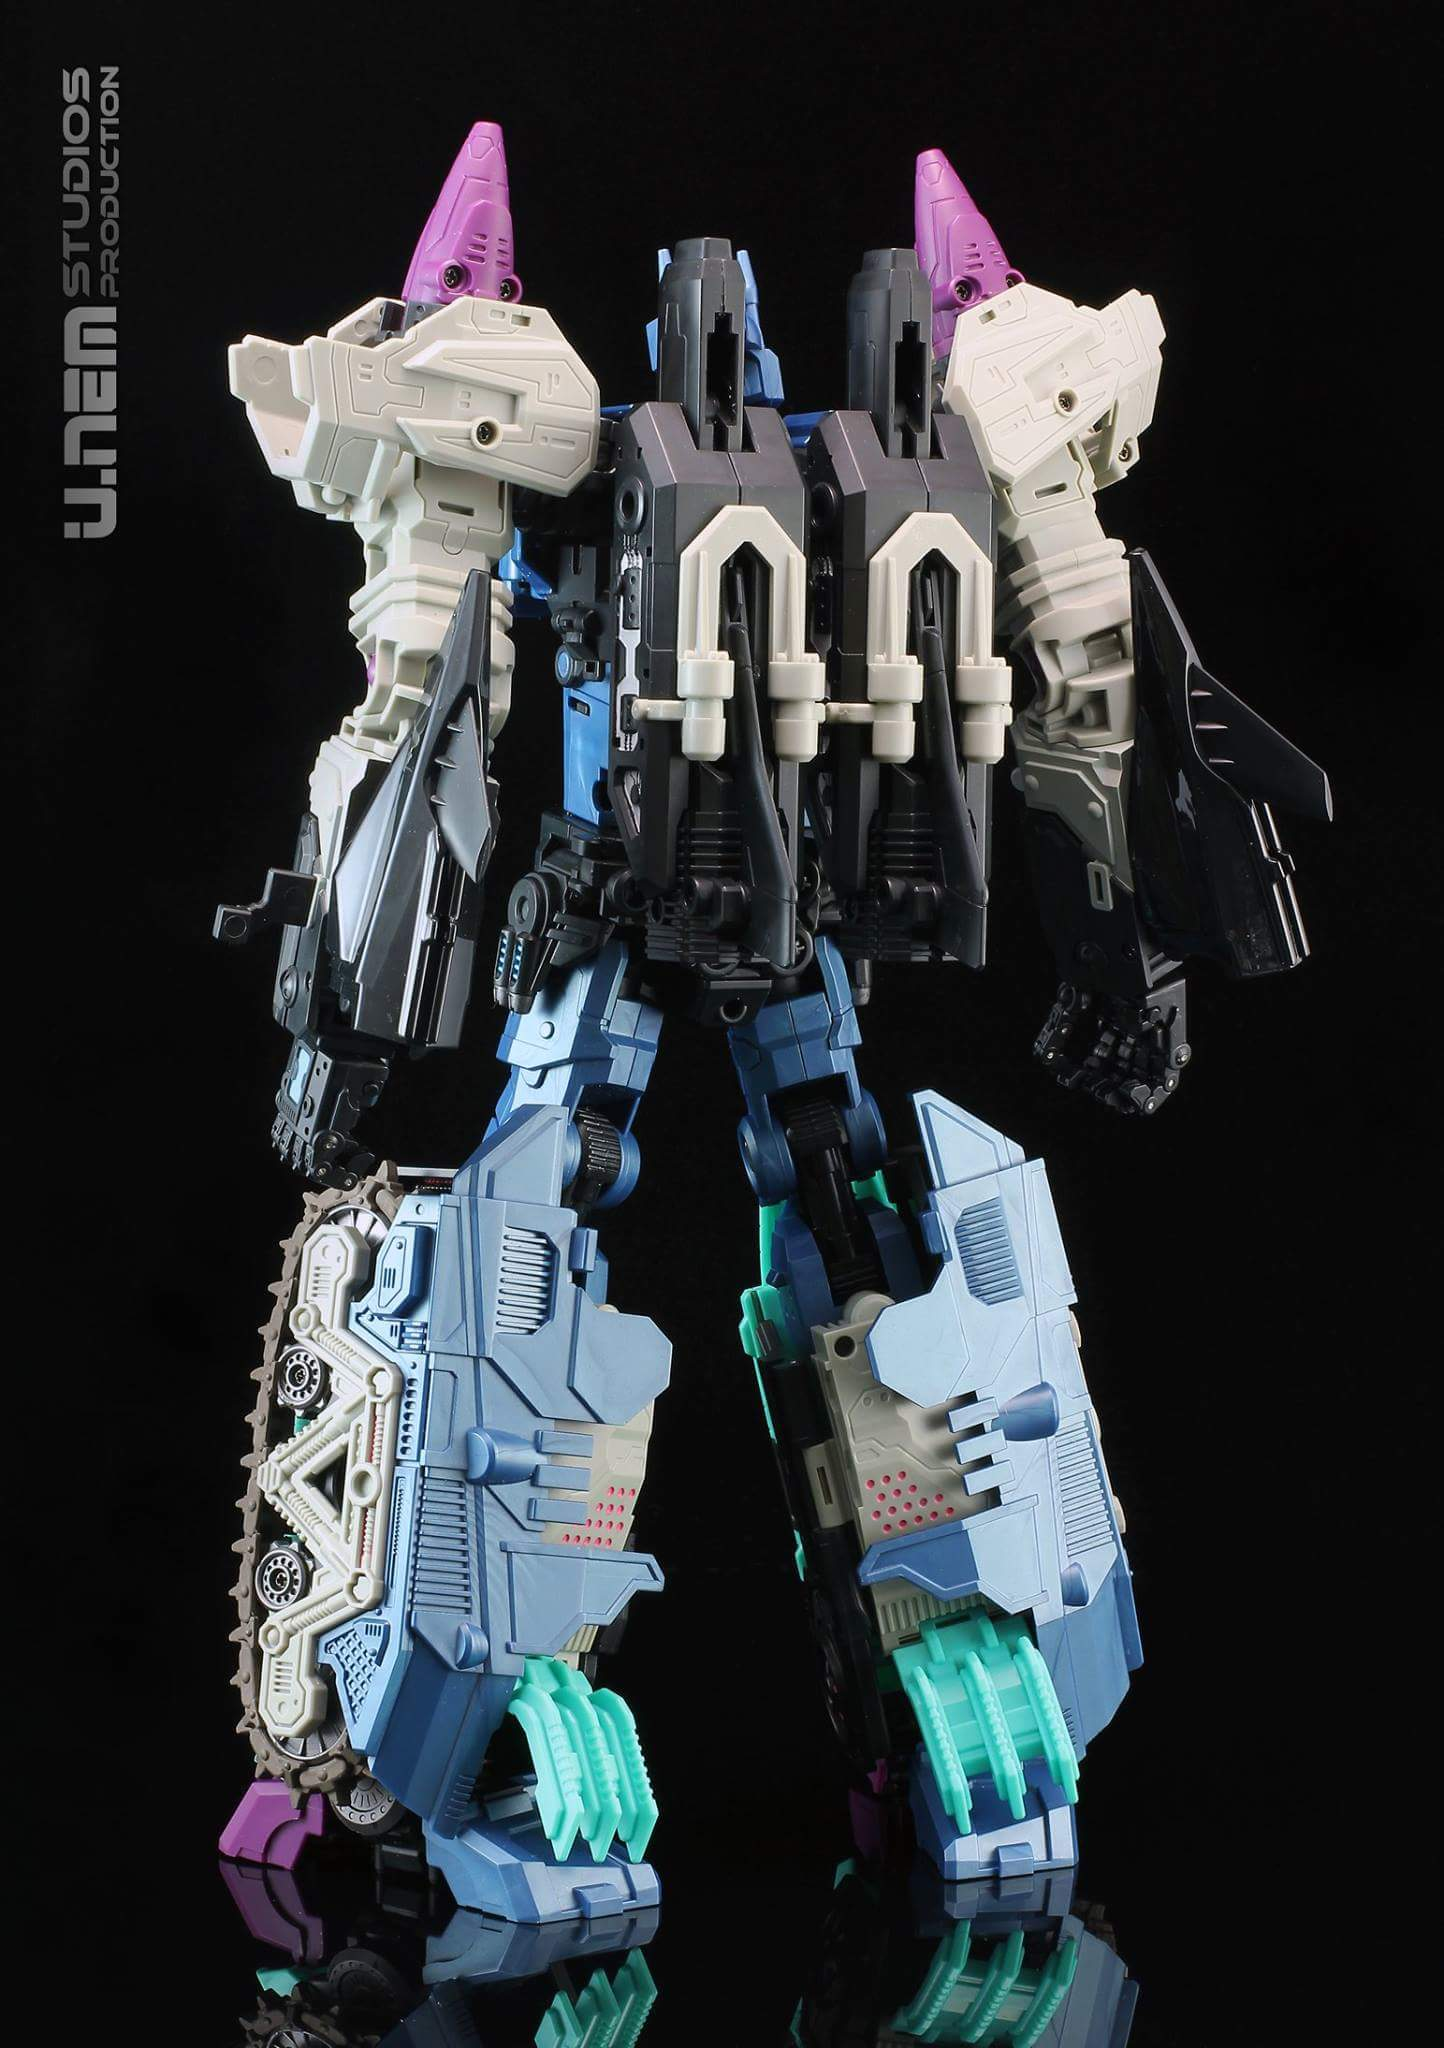 [Mastermind Creations] Produit Tiers - R-17 Carnifex - aka Overlord (TF Masterforce) - Page 2 NrEOzFrS